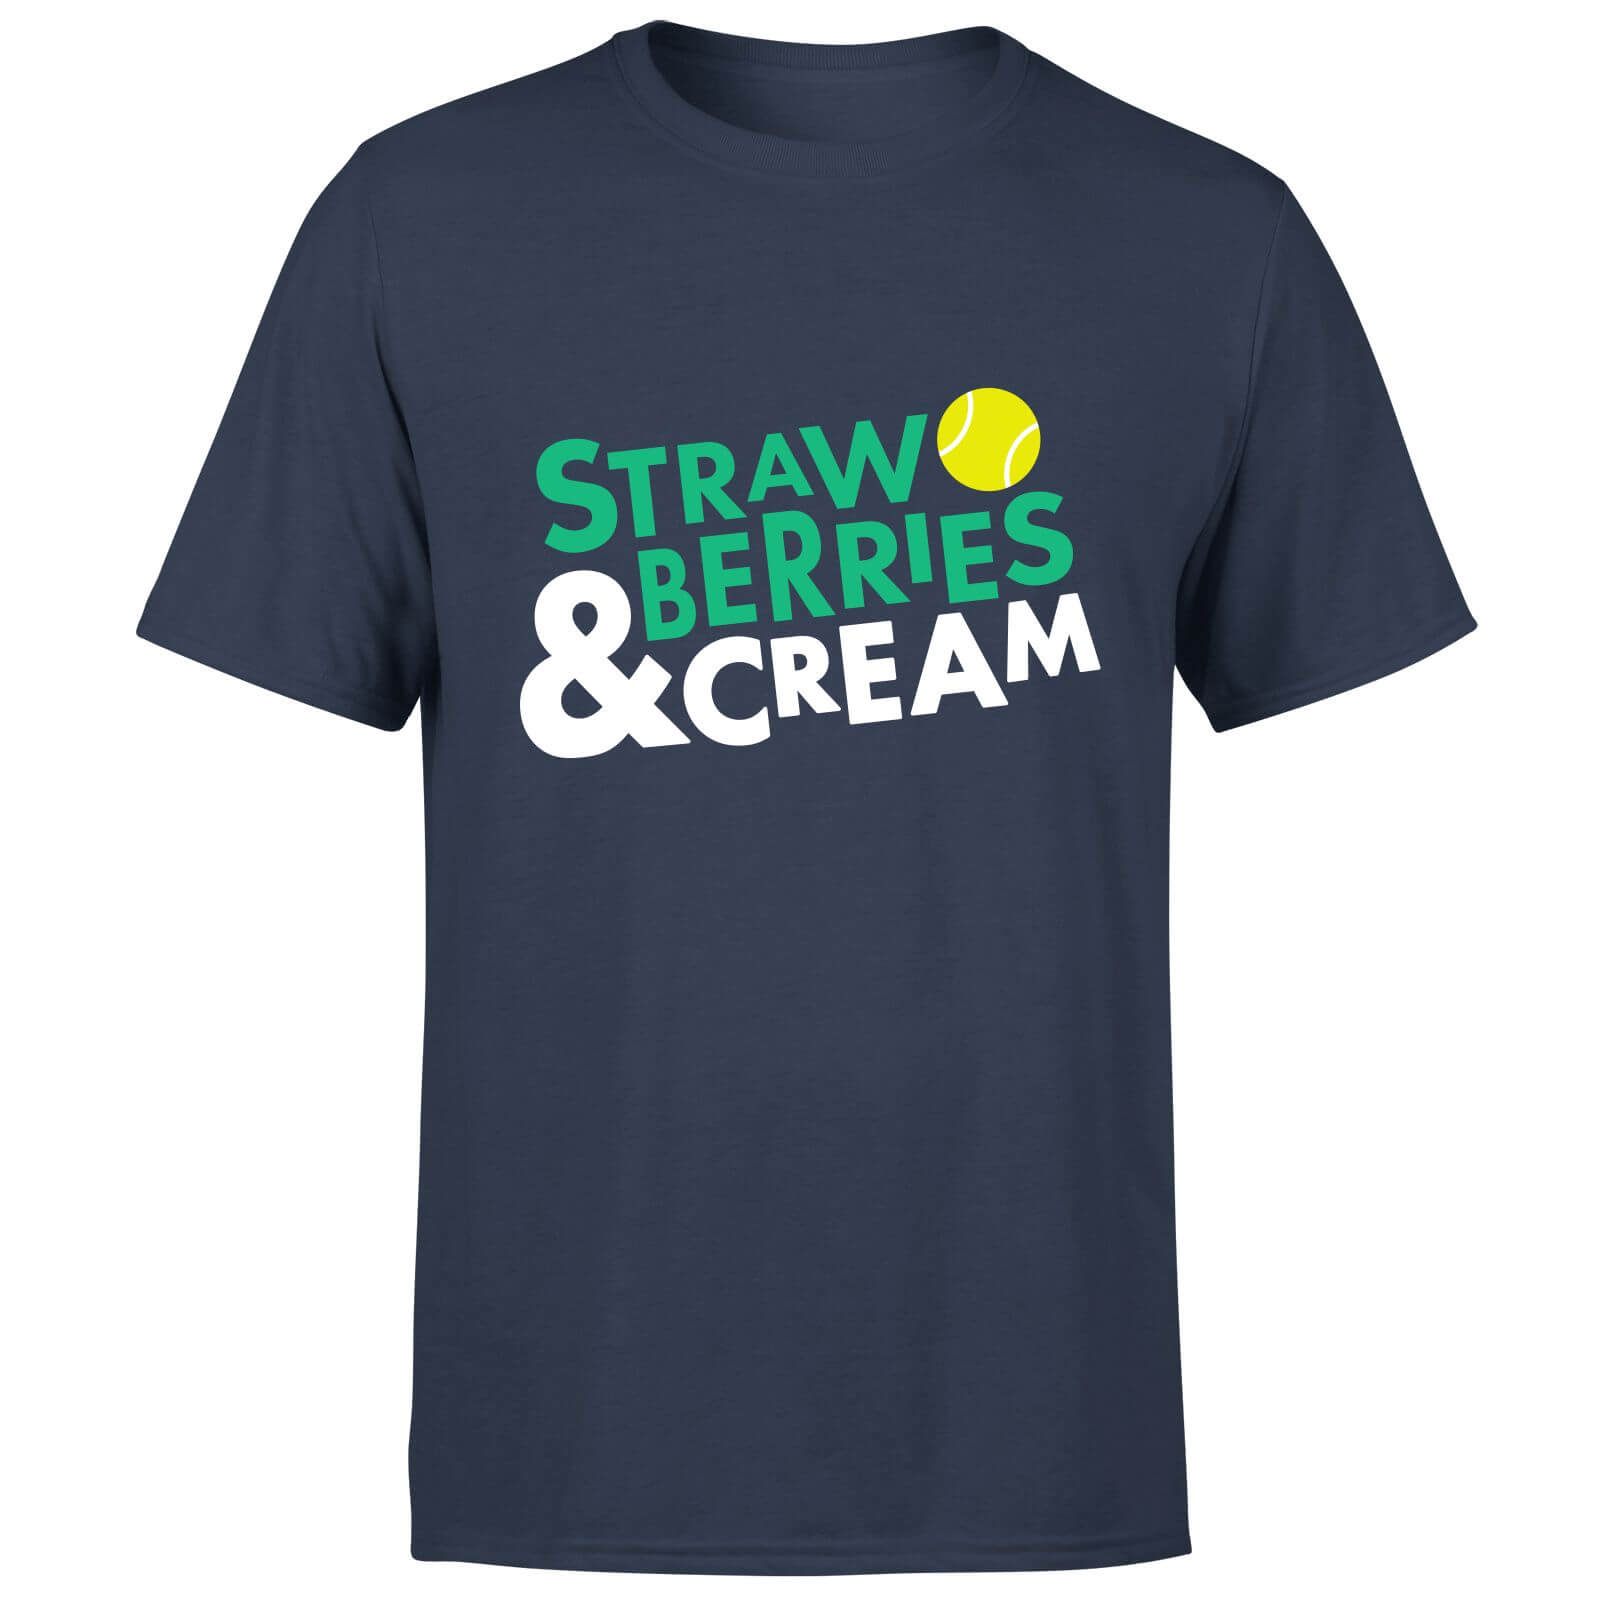 Strawberries and Cream T-Shirt - Navy